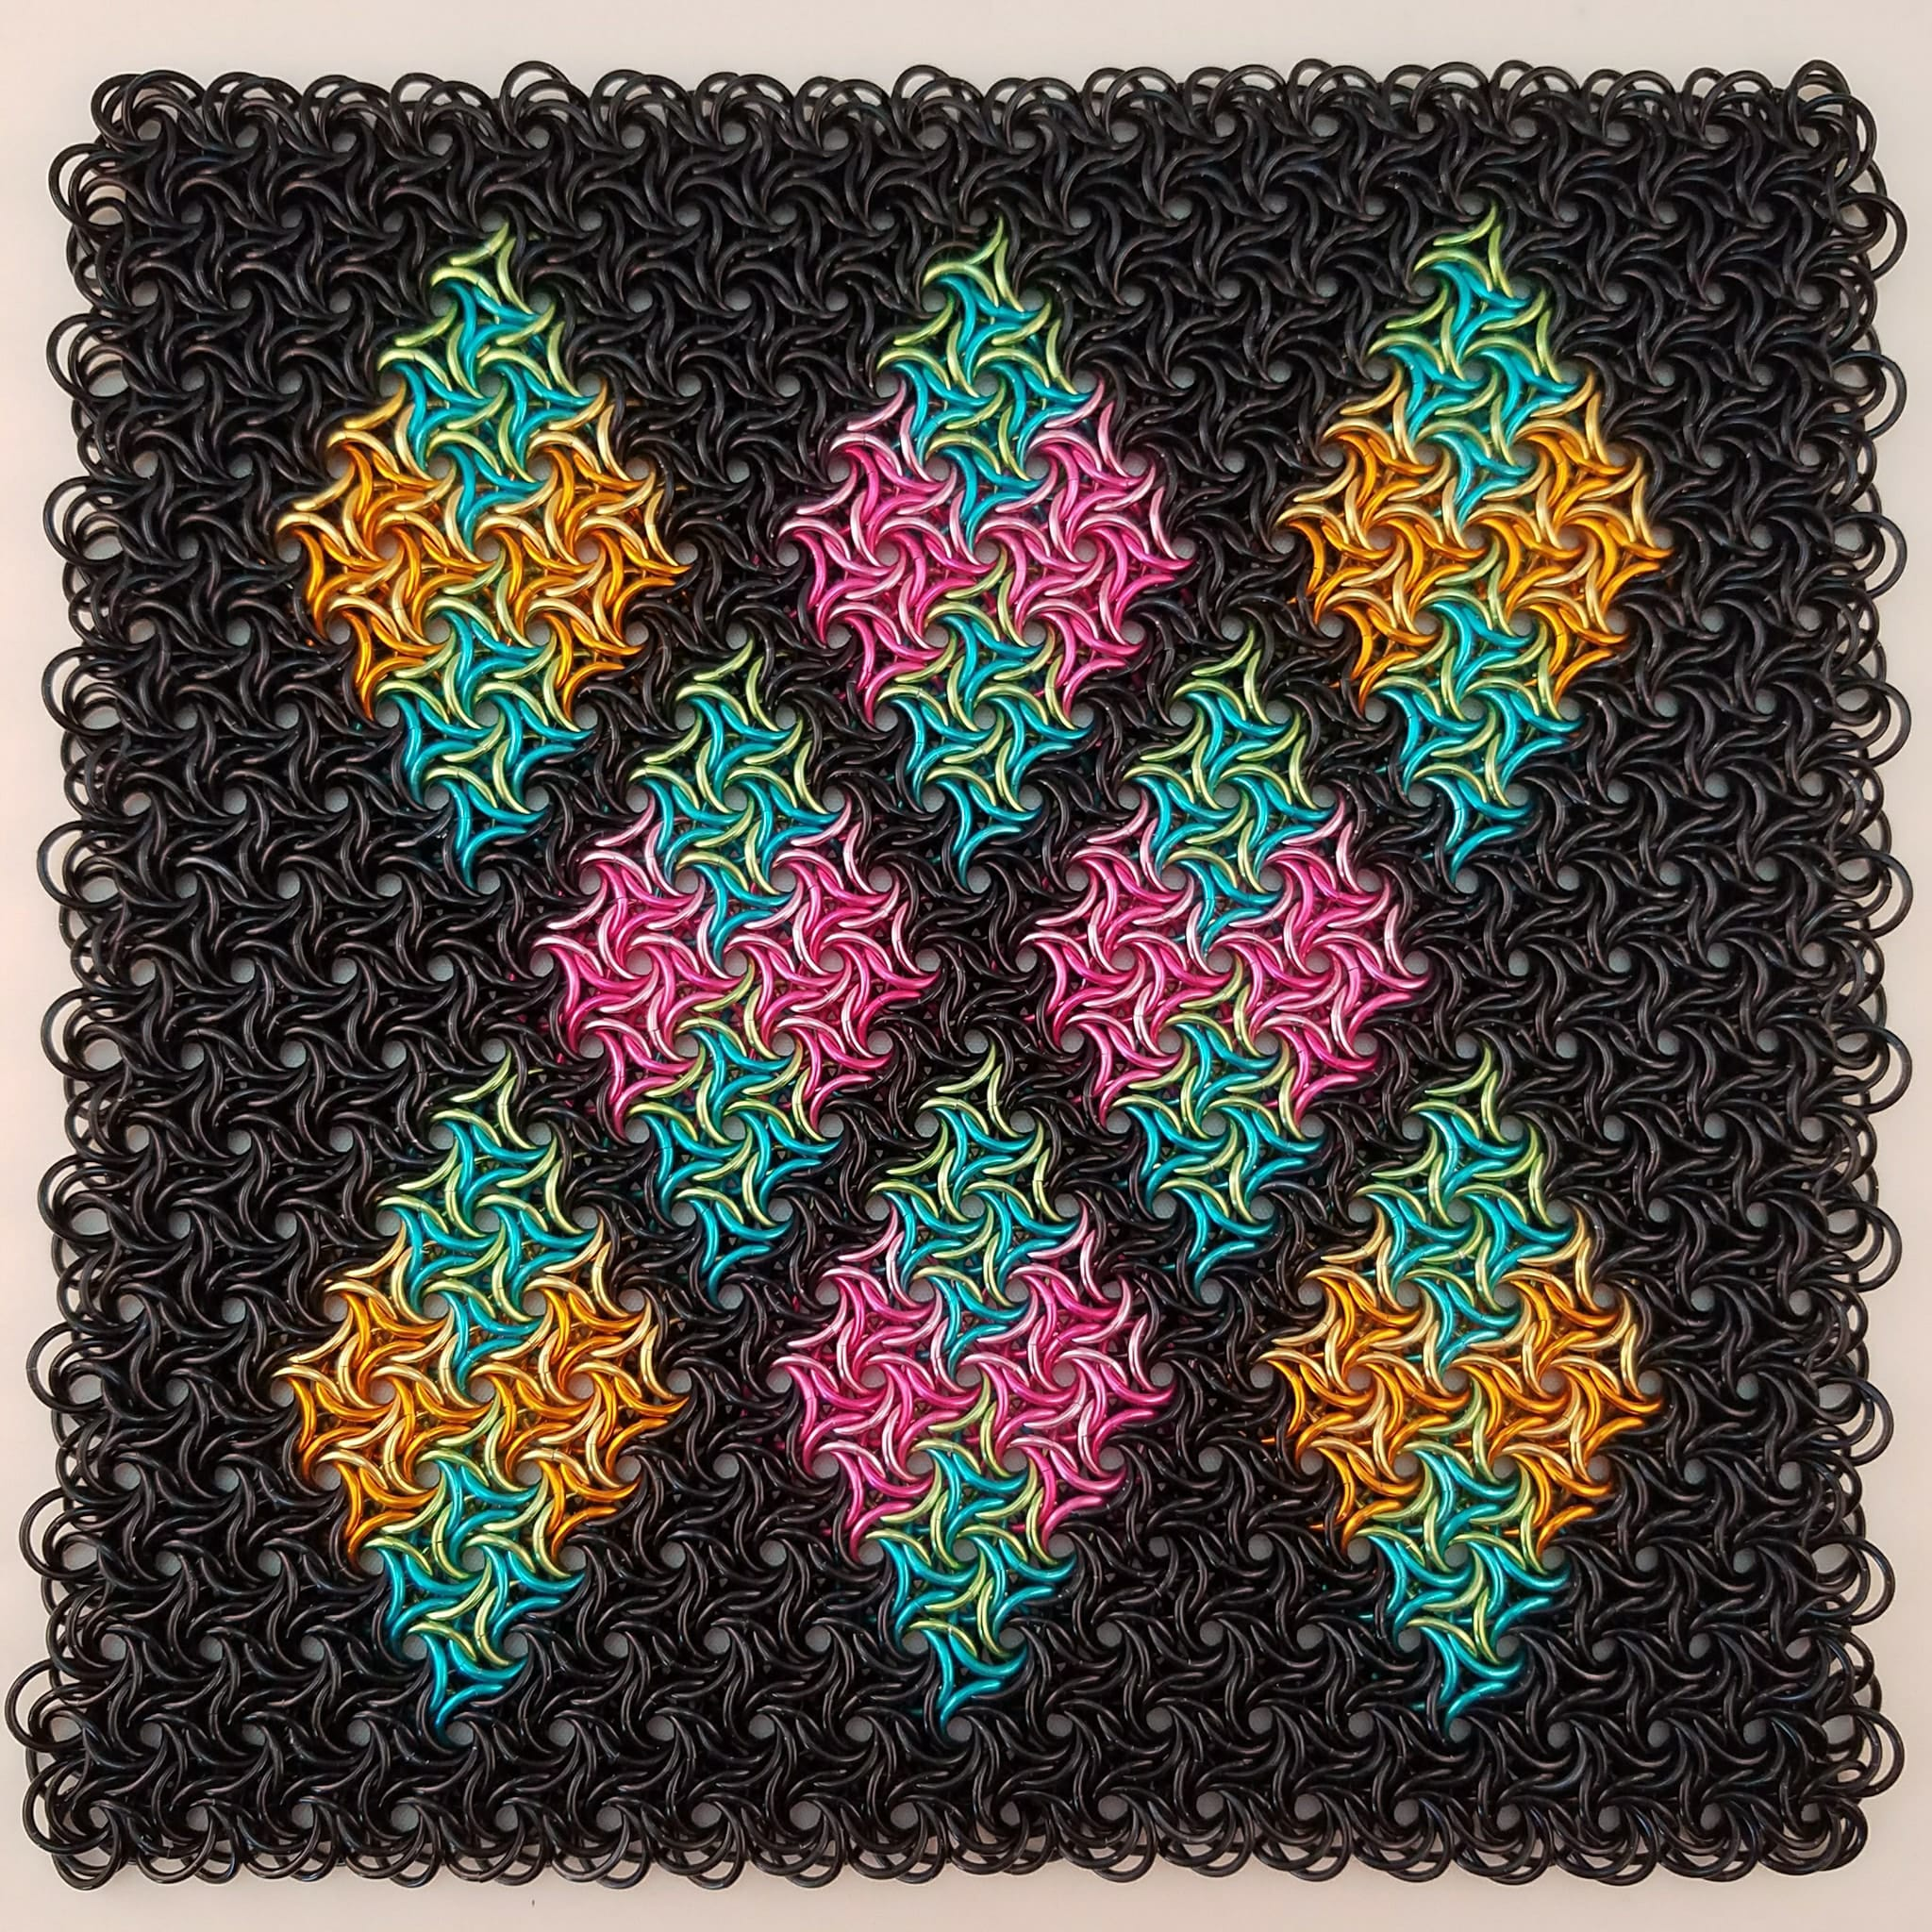 Black square of moorish rose with colorful diamond shaped inlay